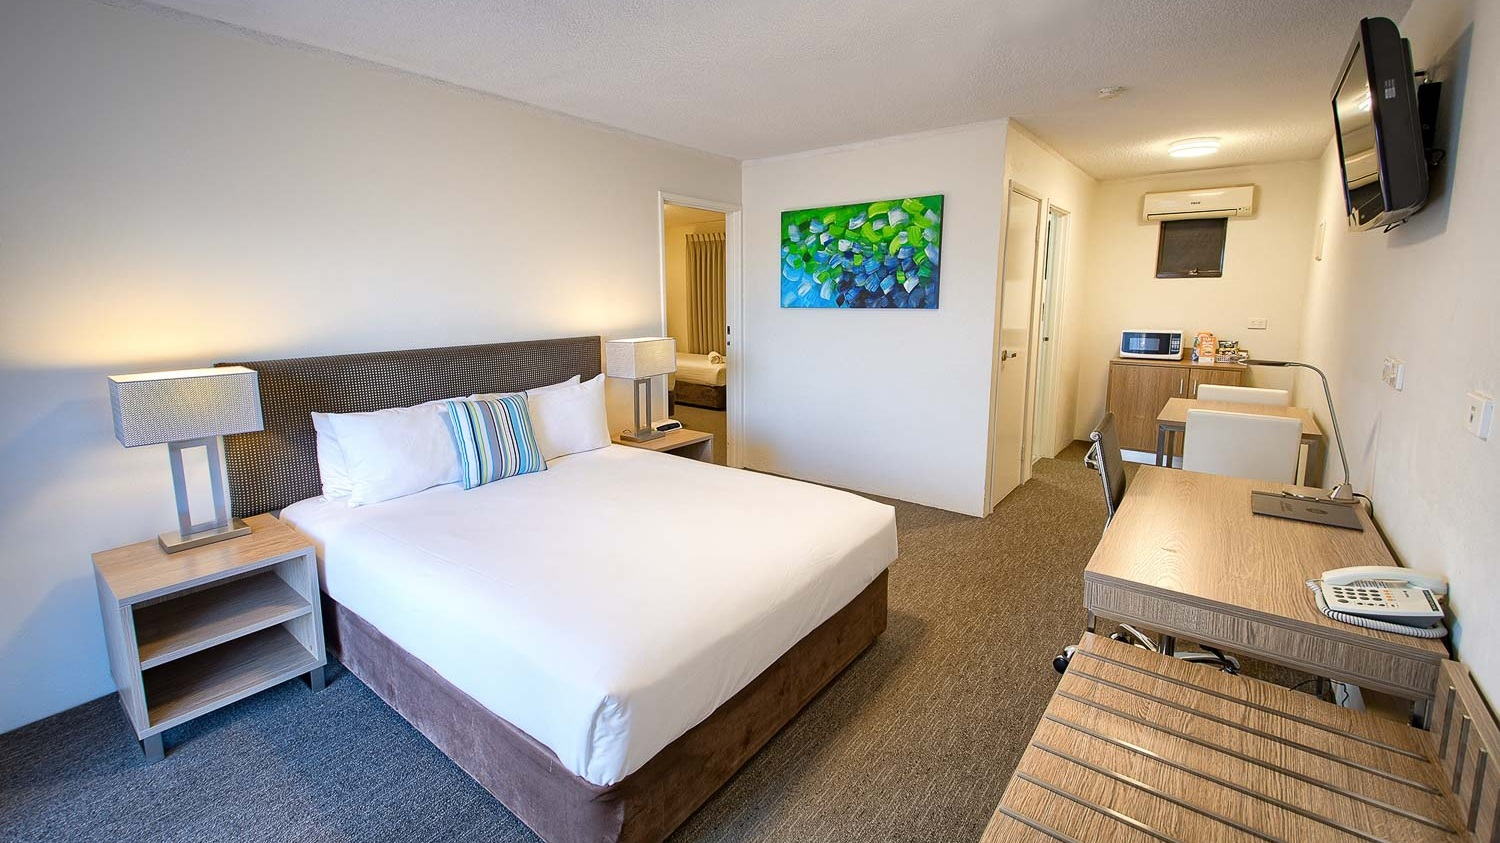 Junior Suite - A modern suite with 2 bedrooms and a shared ensuite.